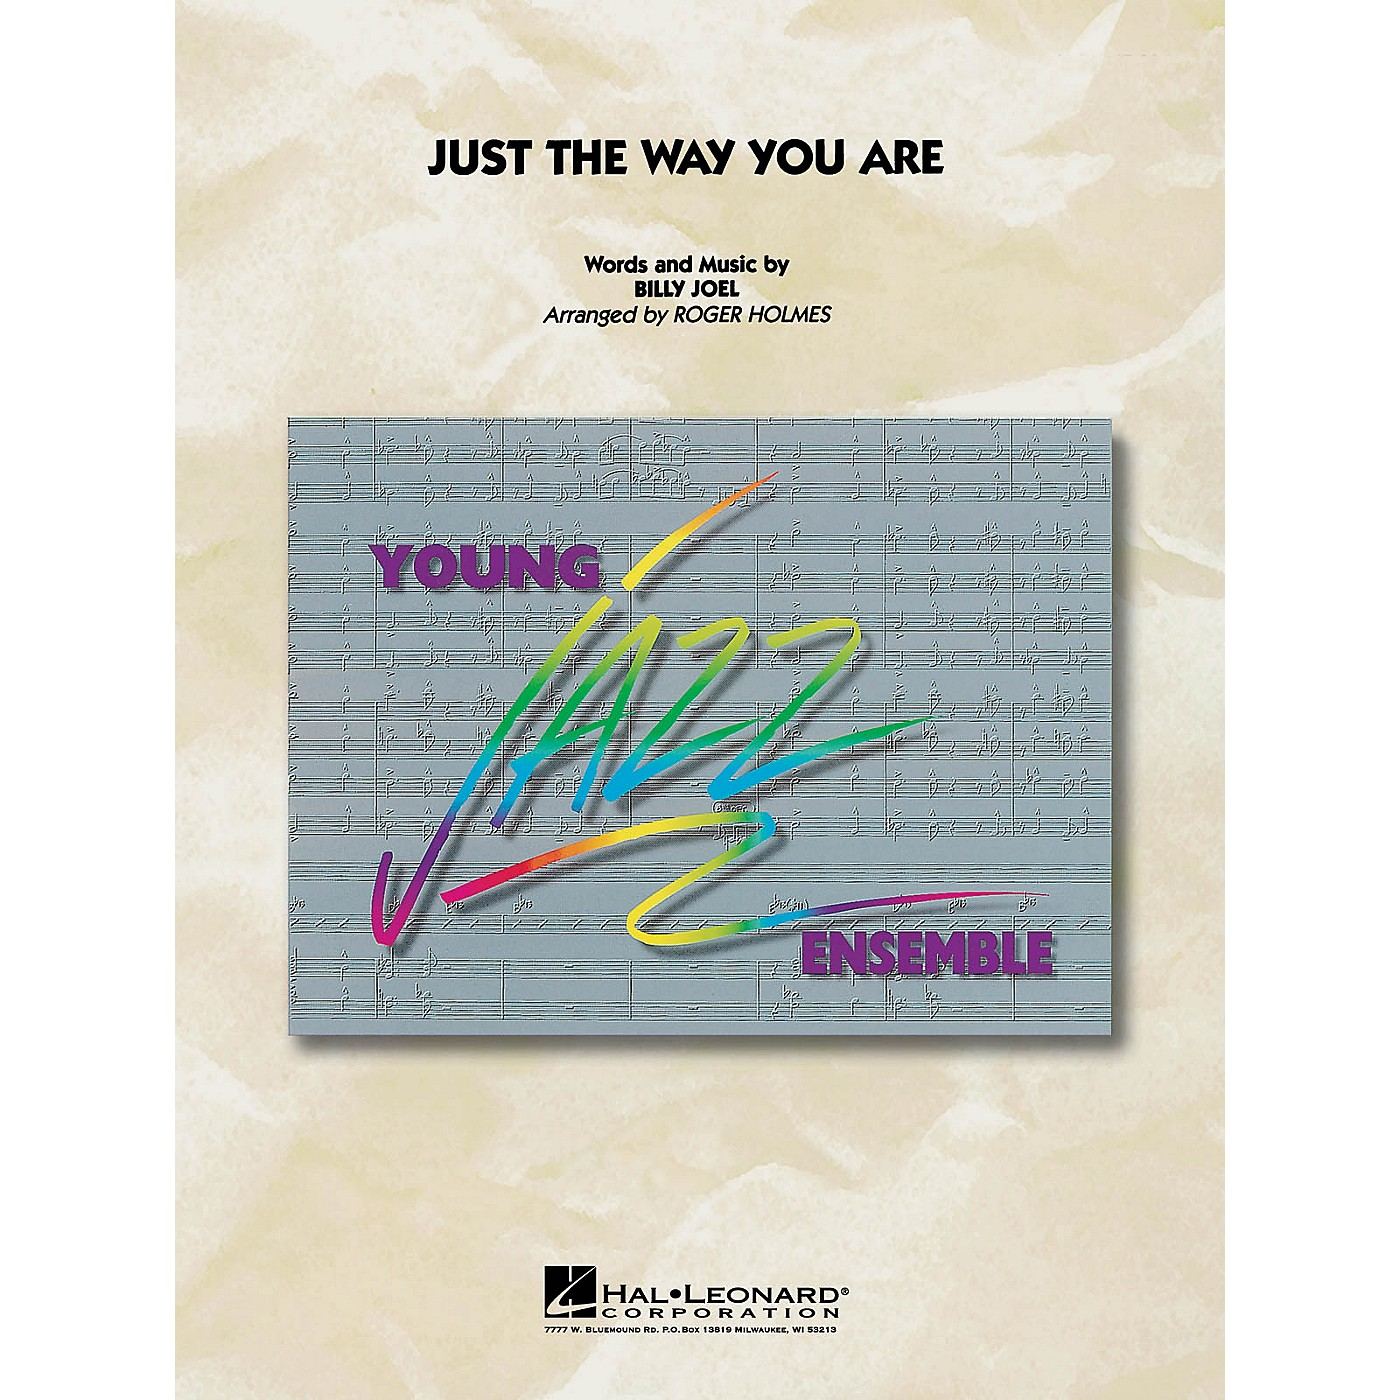 Hal Leonard Just the Way You Are Jazz Band Level 3 Arranged by Roger Holmes thumbnail